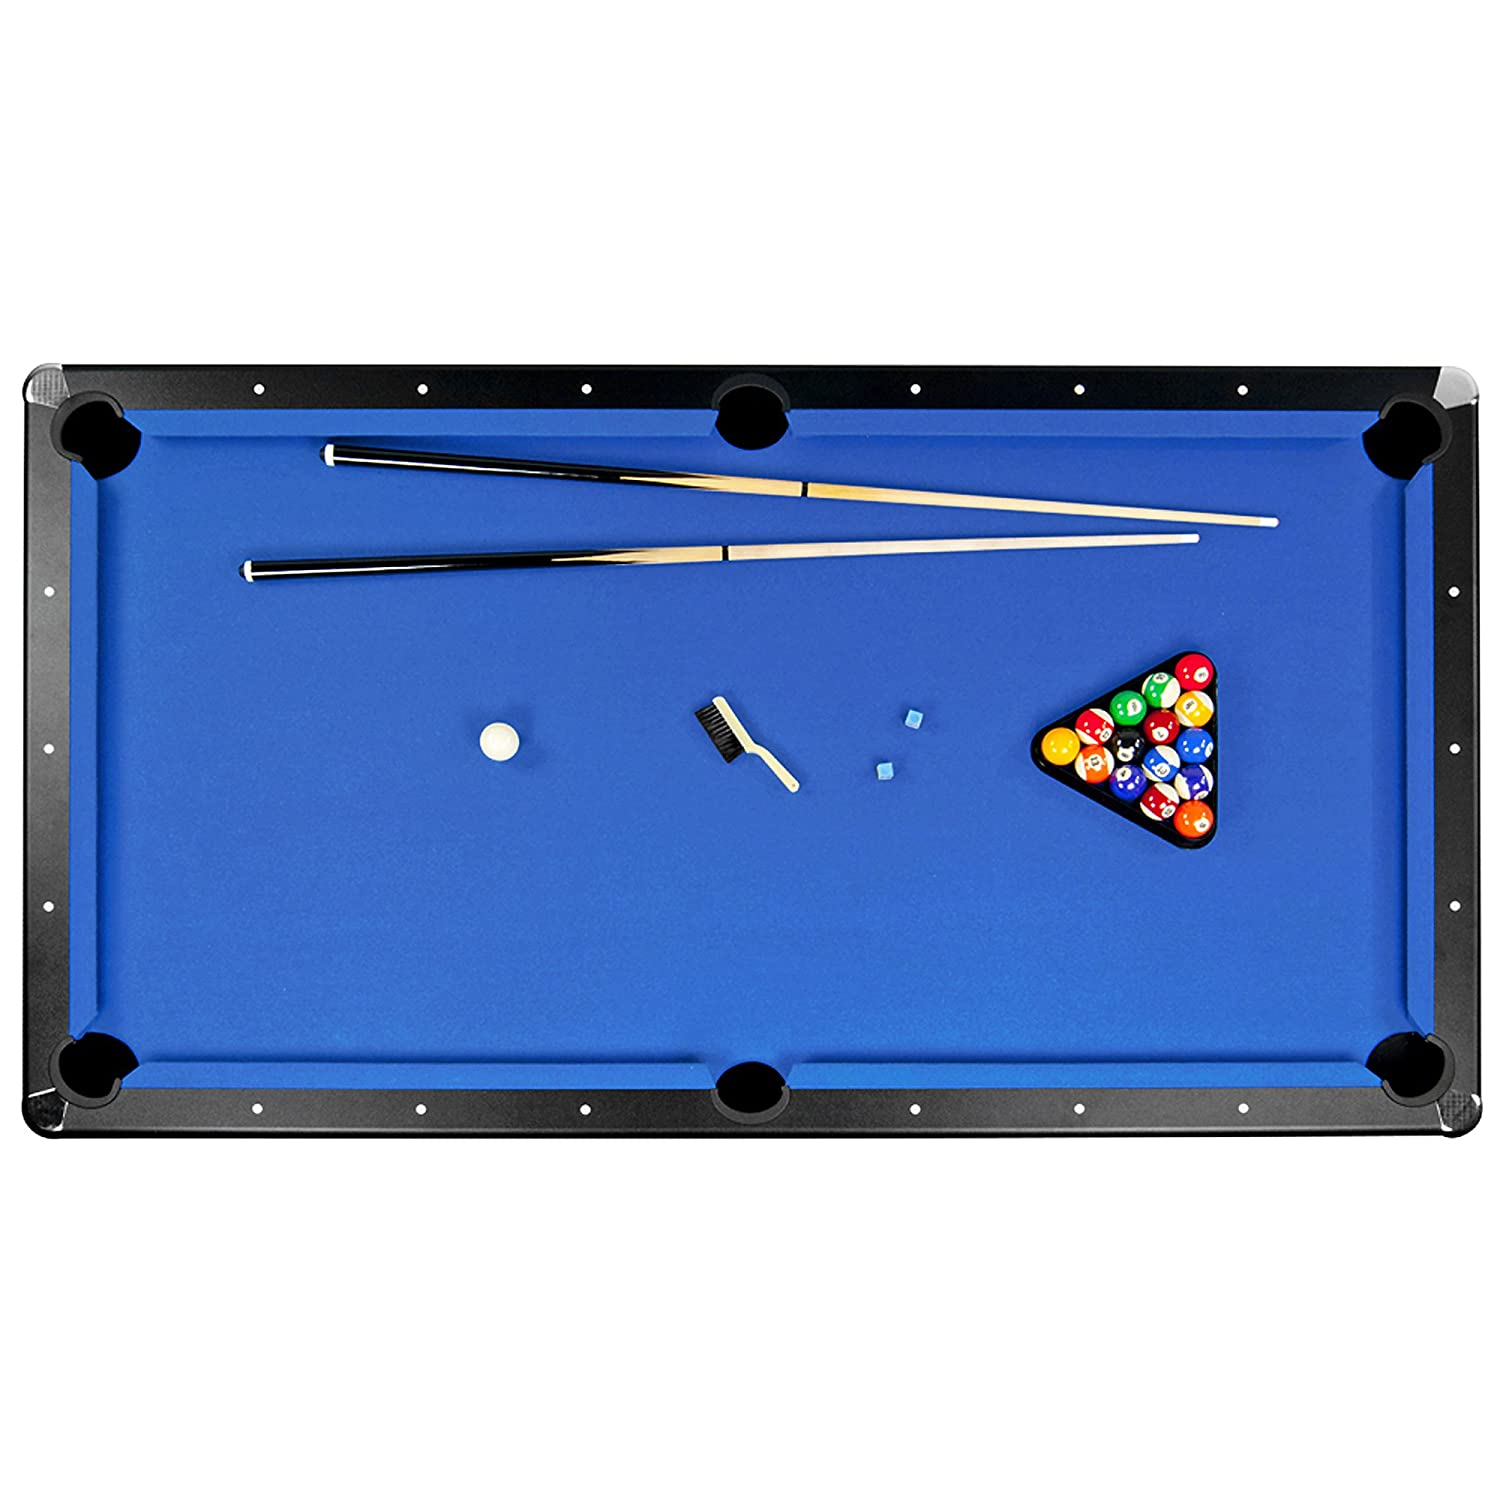 dyas robert hustler billiard folding pool foldup table